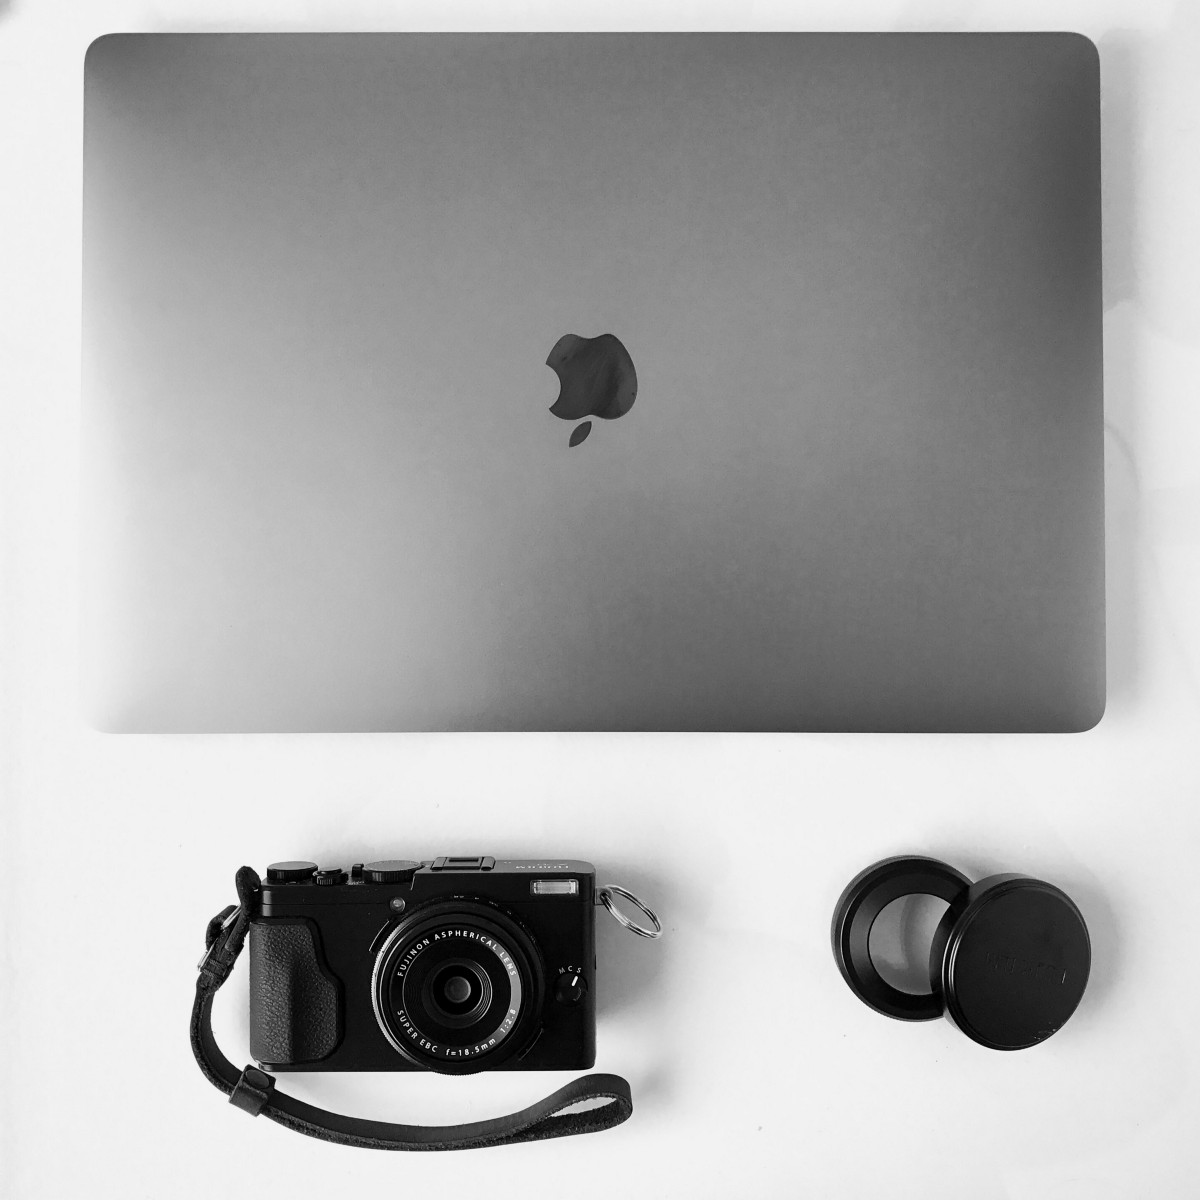 MacBook Pro and Fujifilm X70